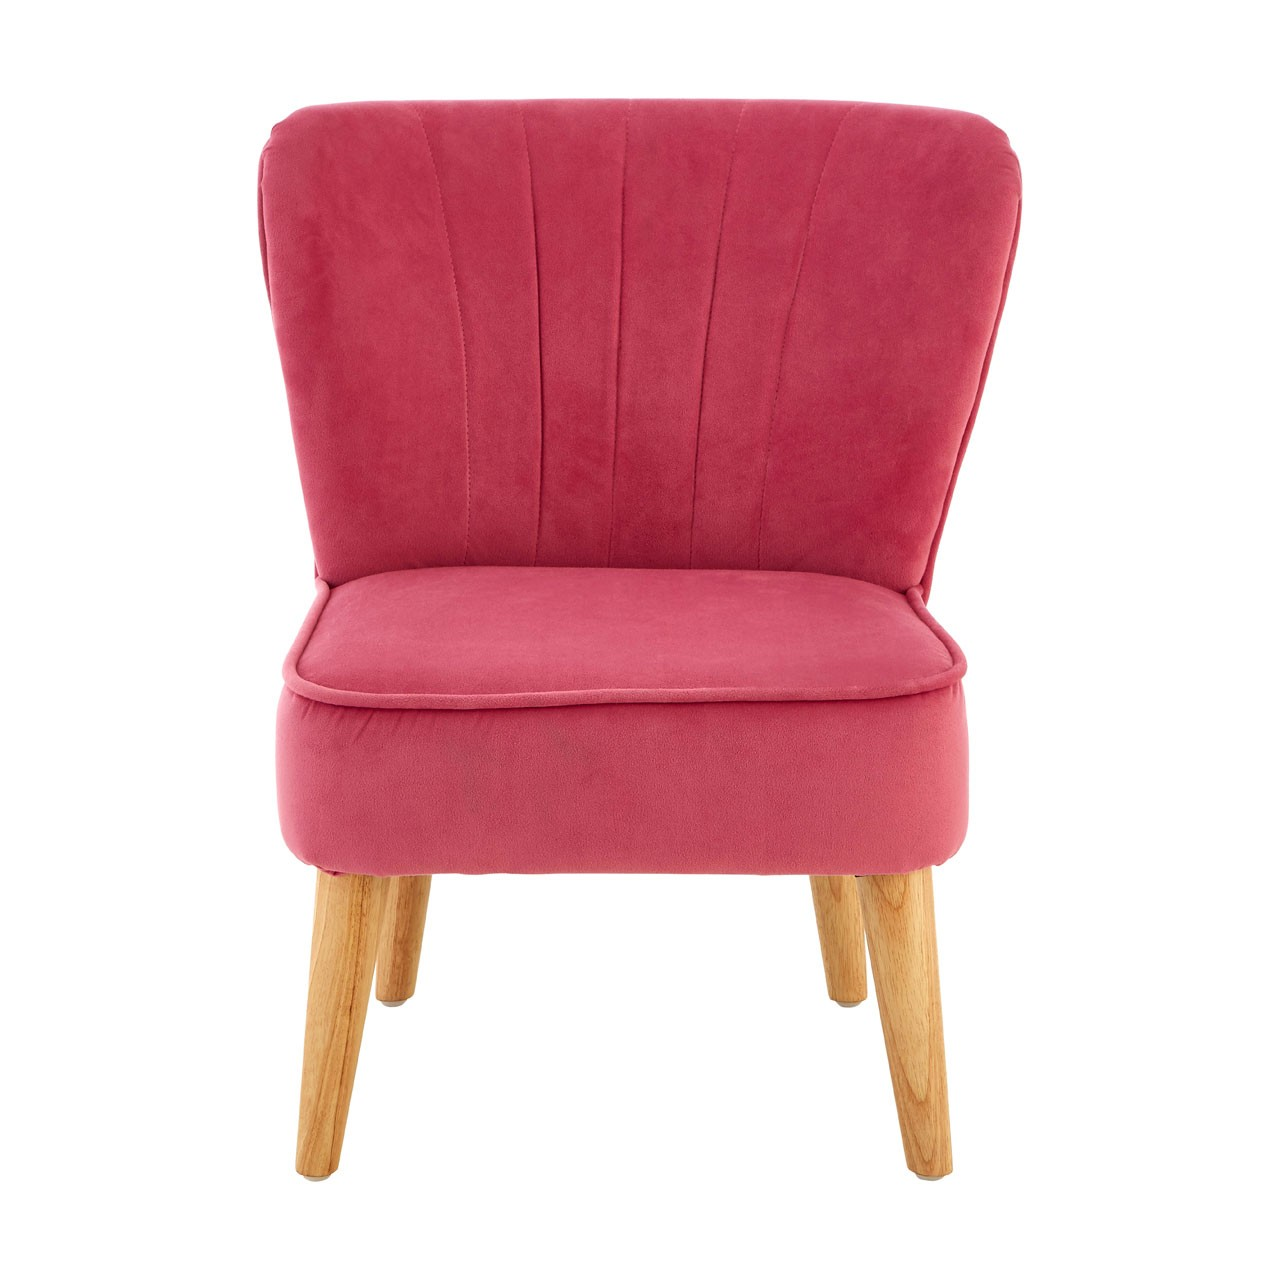 Mia Kids Chair, Pink Velvet, Natural Wood Legs